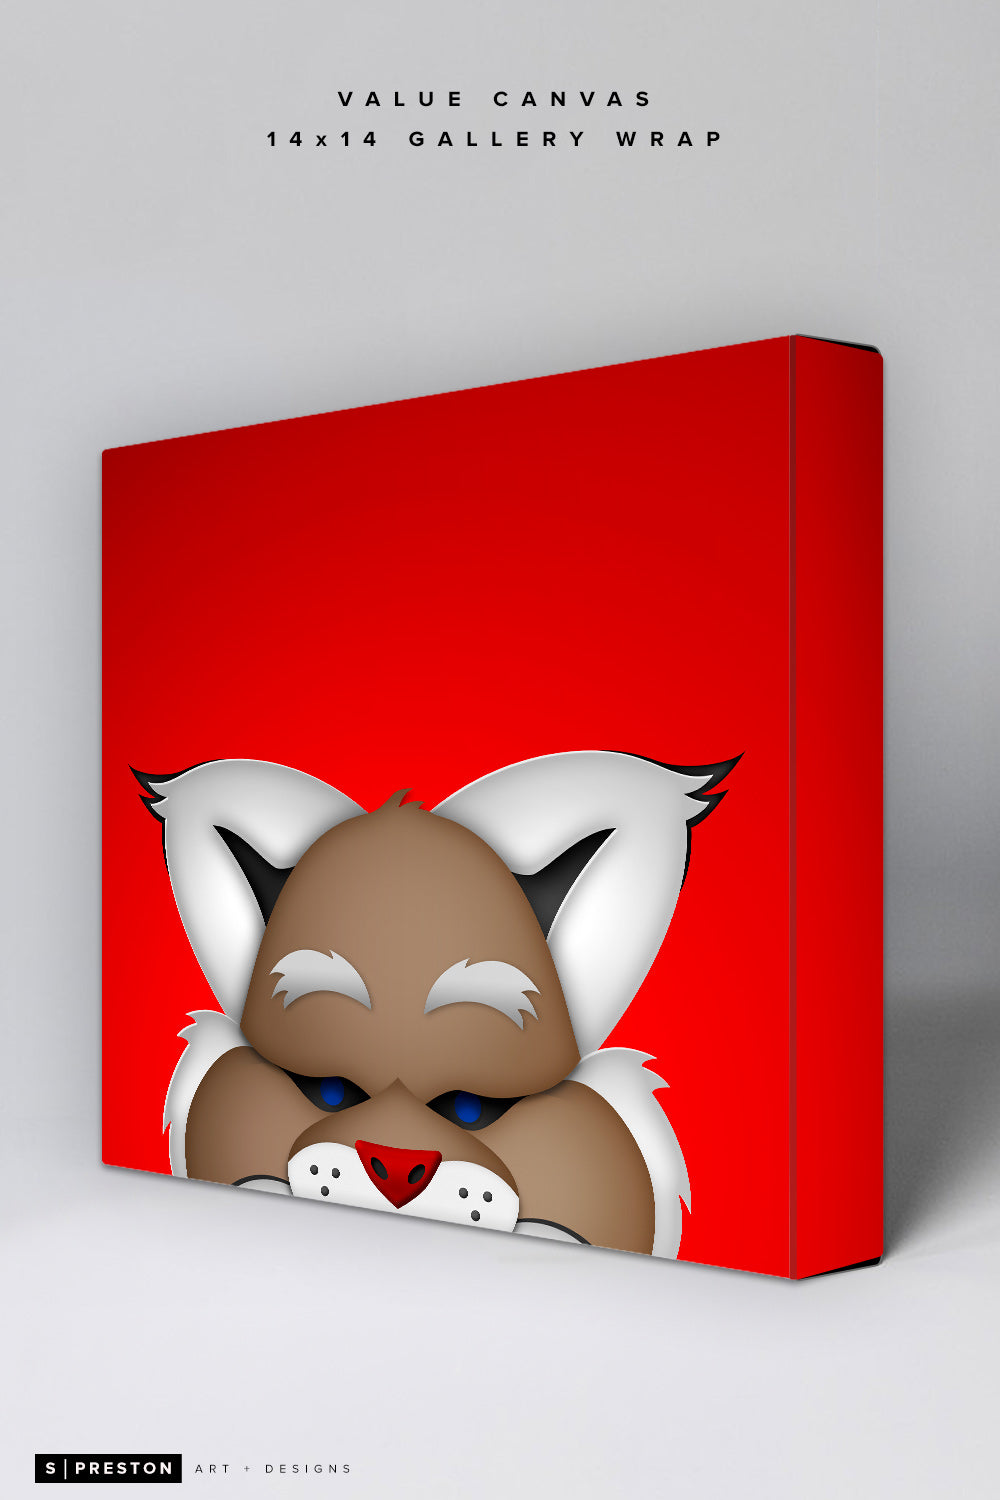 Minimalist D. Baxter the Bobcat Value Canvas Value Canvas - Arizona Diamondbacks - S. Preston Art + Designs